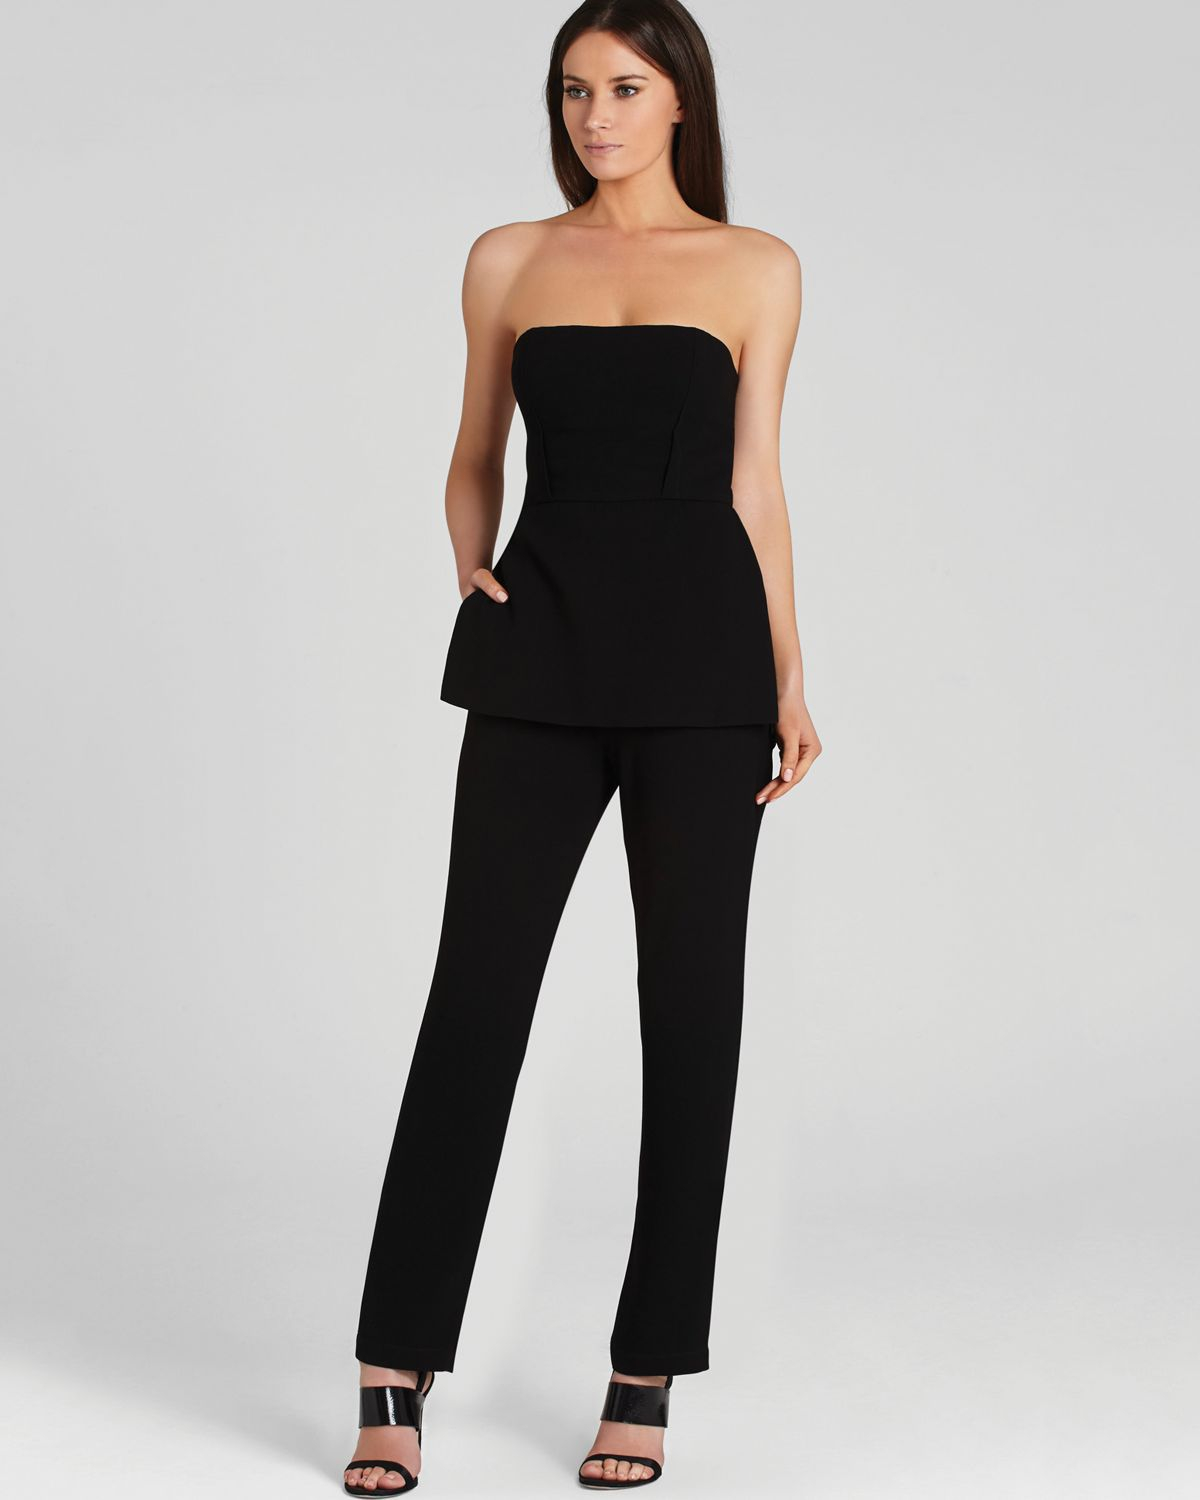 Shop sexy rompers and jumpsuits for women at nichapie.ml your style with sexy black jumpsuit,sexy rompers,long sleeve jumpsuit,wide leg jumpsuit,white,black romper,long jumpsuit,short romper,strapless romper,two piece jumpsuit,cute jumpsuits,floral rompers,white jumpsuit,halter jumpsuit,harem jumpsuit,lace mesh jumpsuit,classy rompers and jumpsuits,bodycon romper,v neck jumpsuit.